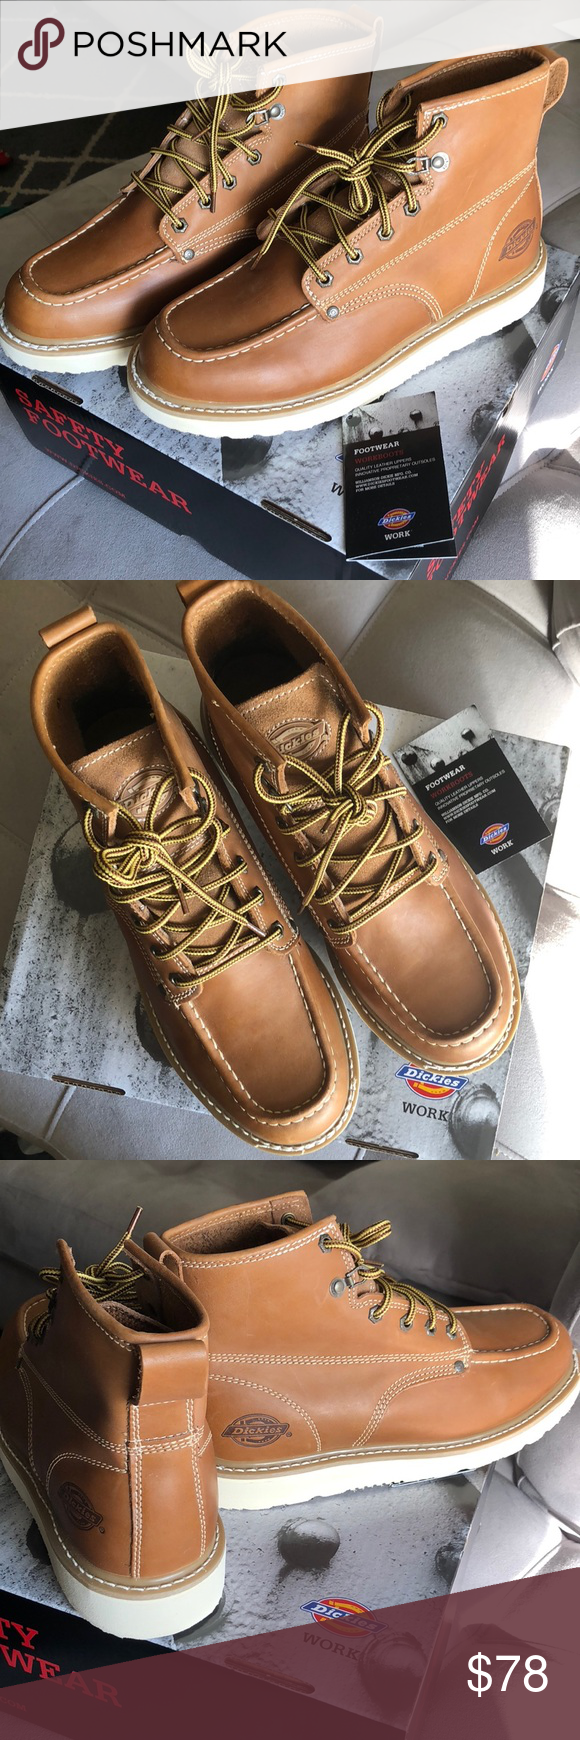 a417d217ce6 Dickies Trader Work Boots Dickies Trader Wedge Bottom Work Boots ...